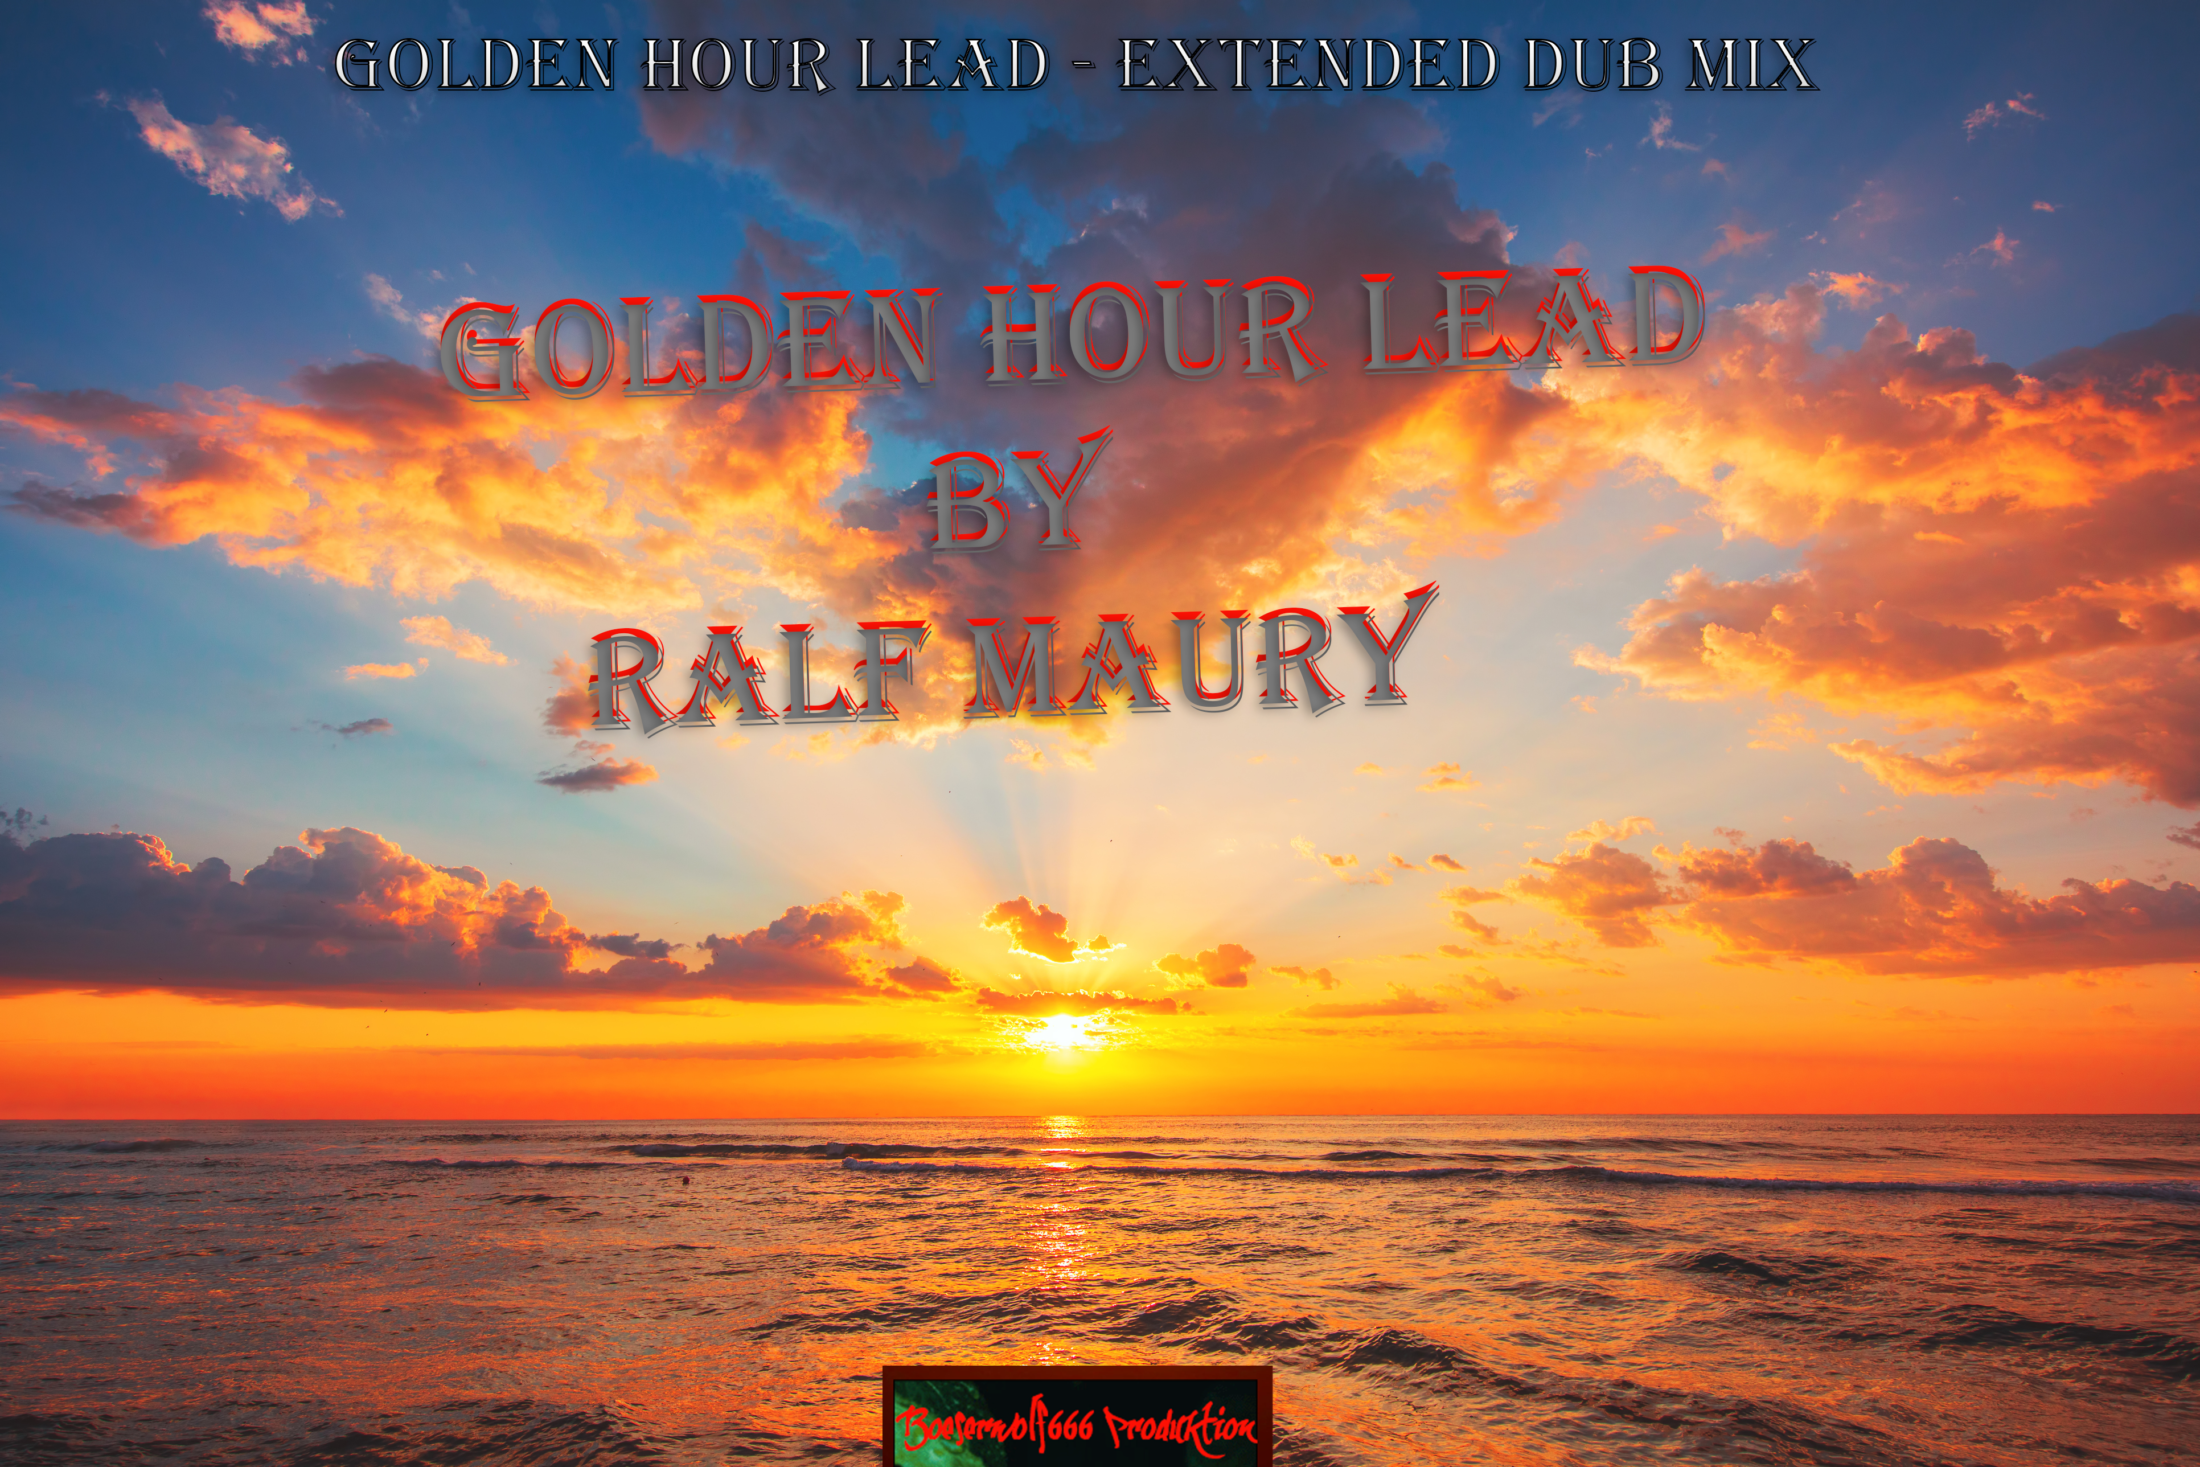 Golden Hour Lead - Extended Dub Mix